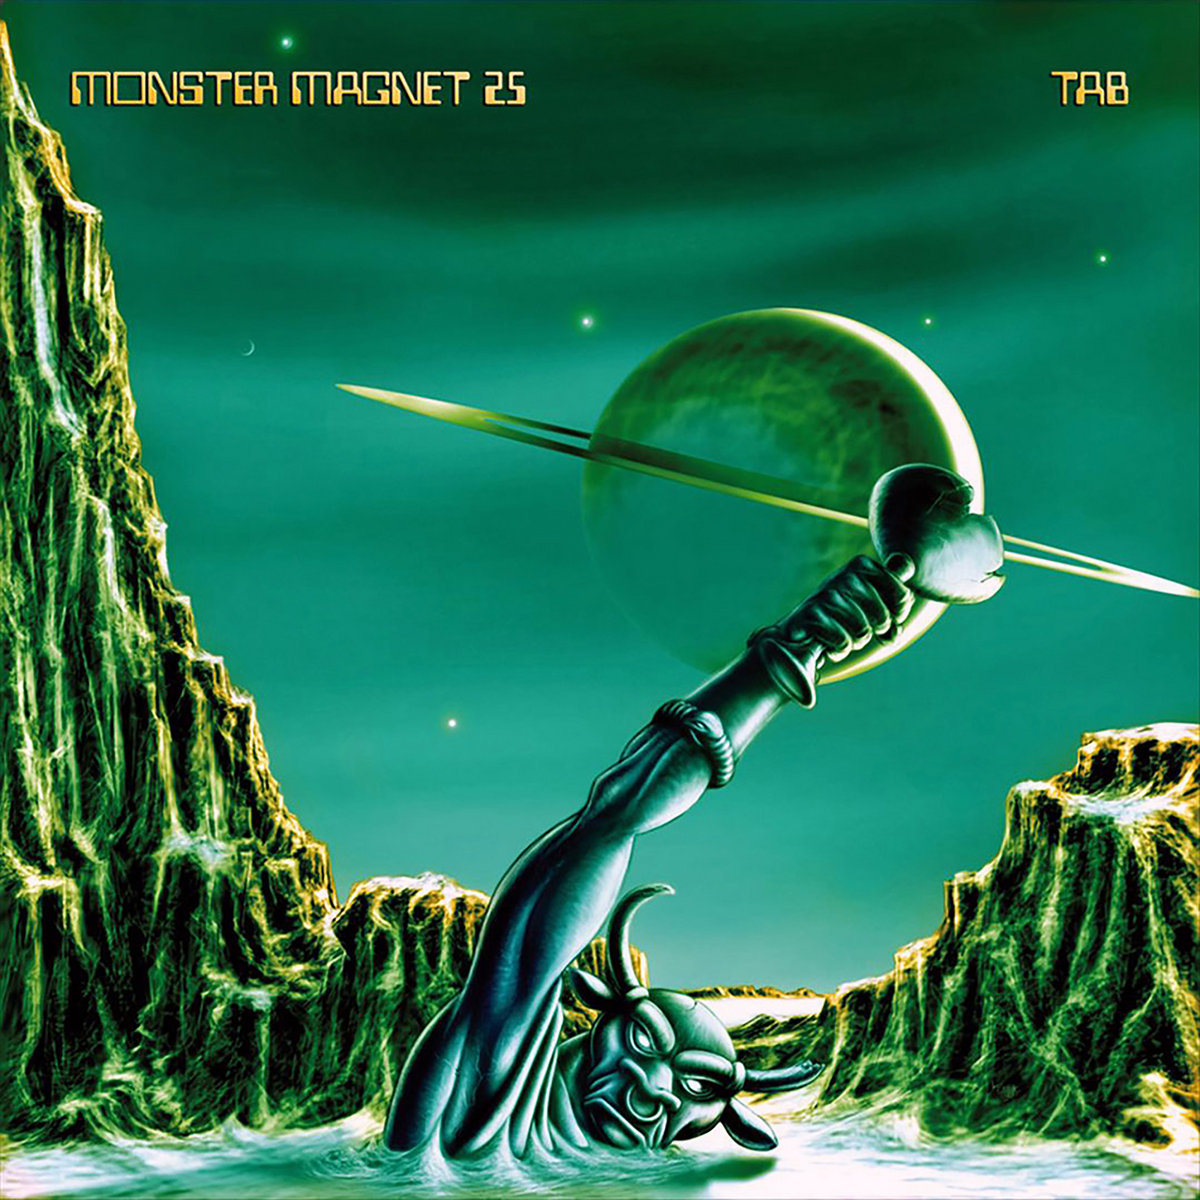 Tab | Monster Magnet